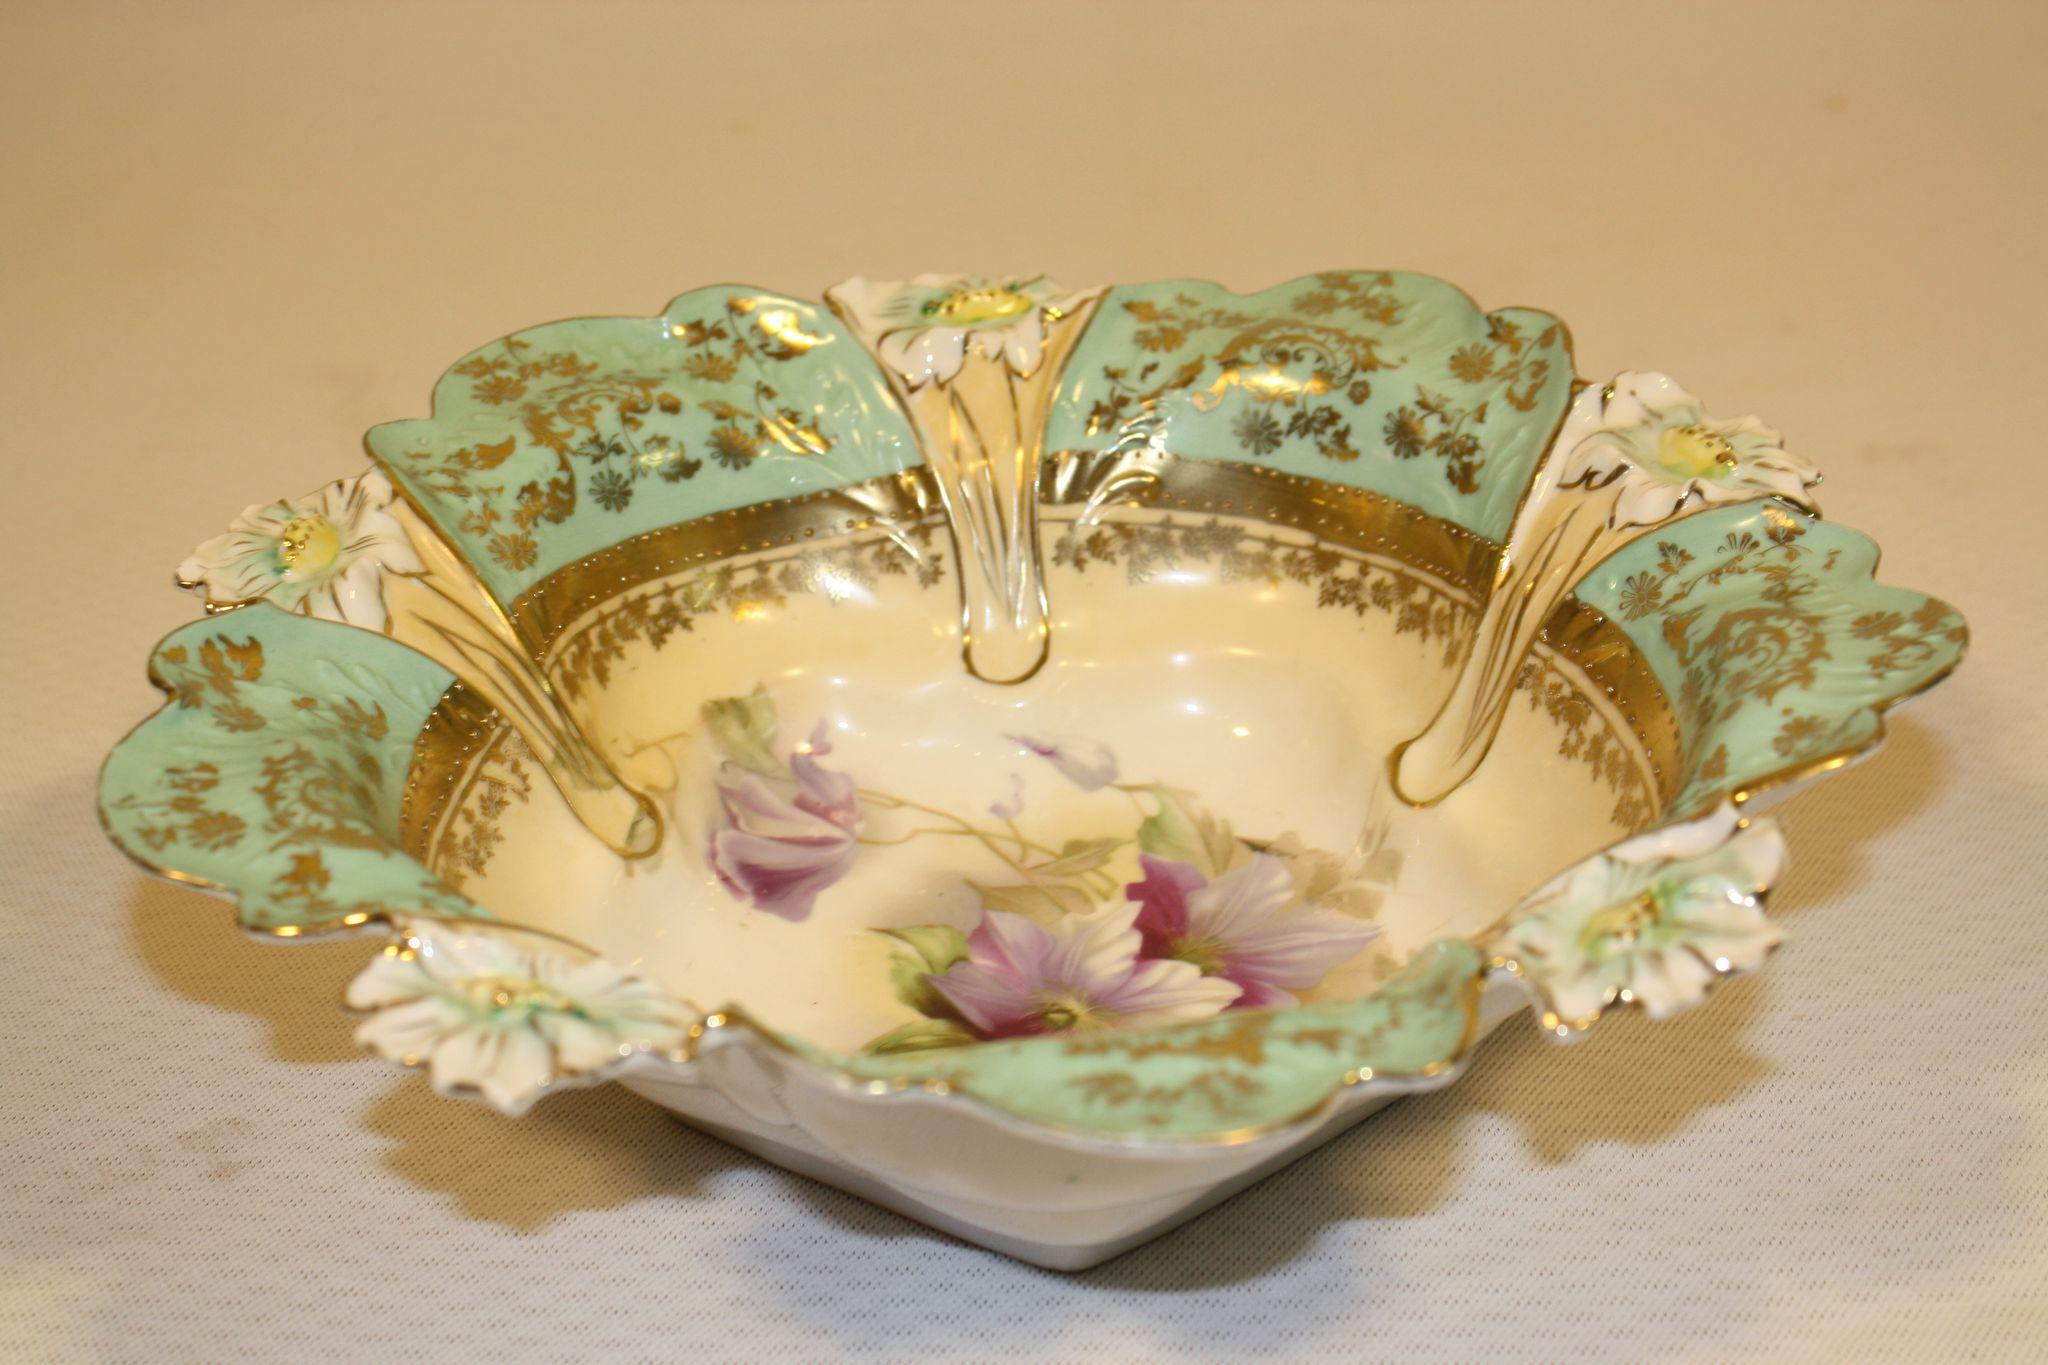 Old Ornate Bowl In Style Of Rs Prussia Sold On Ruby Lane